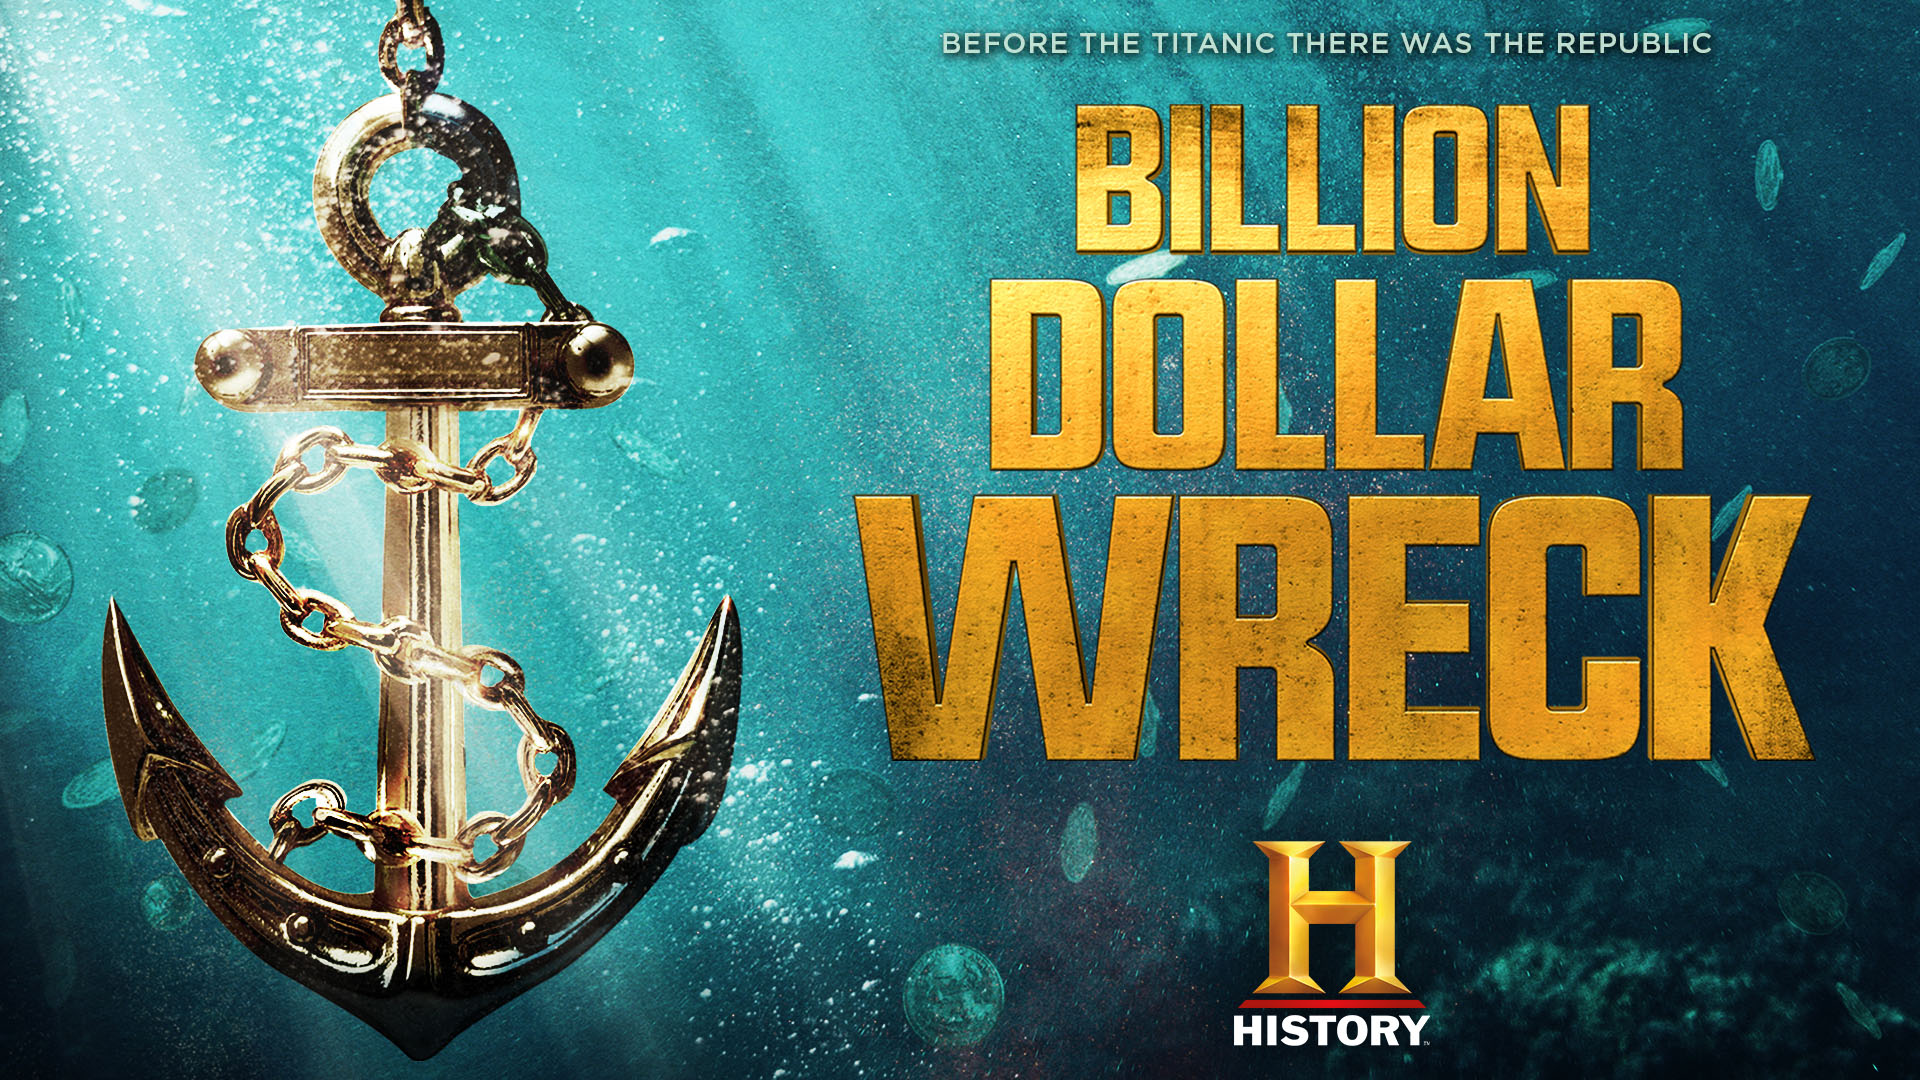 Find out more about Billion Dollar Wreck